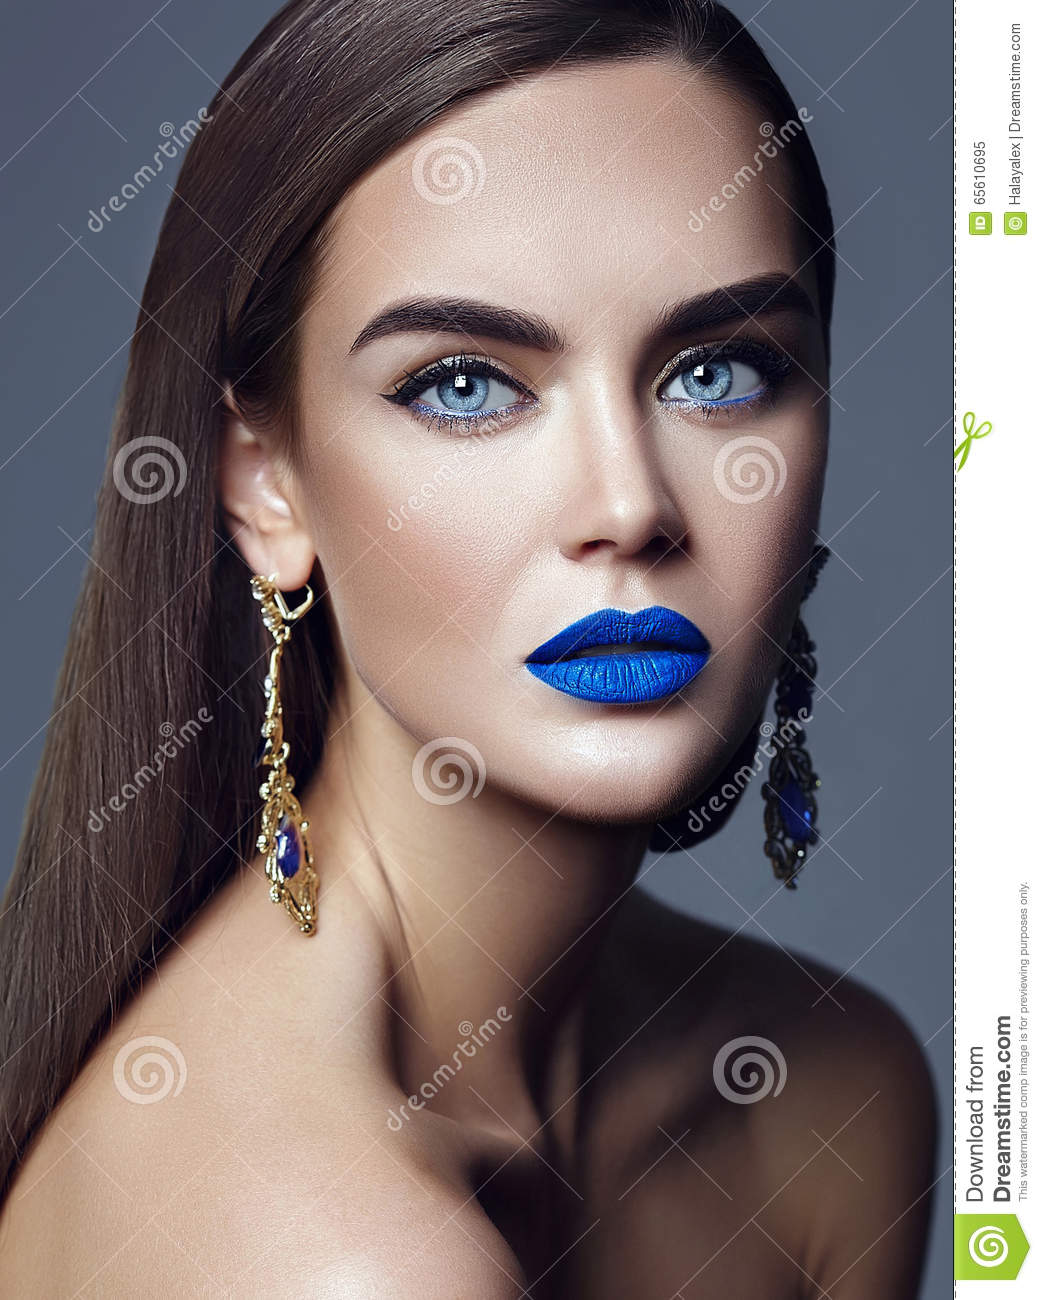 Glitz Glam Blue Diamontrigue Jewelry: Model With Colorful Makeup With Blue Lips And Jewelry